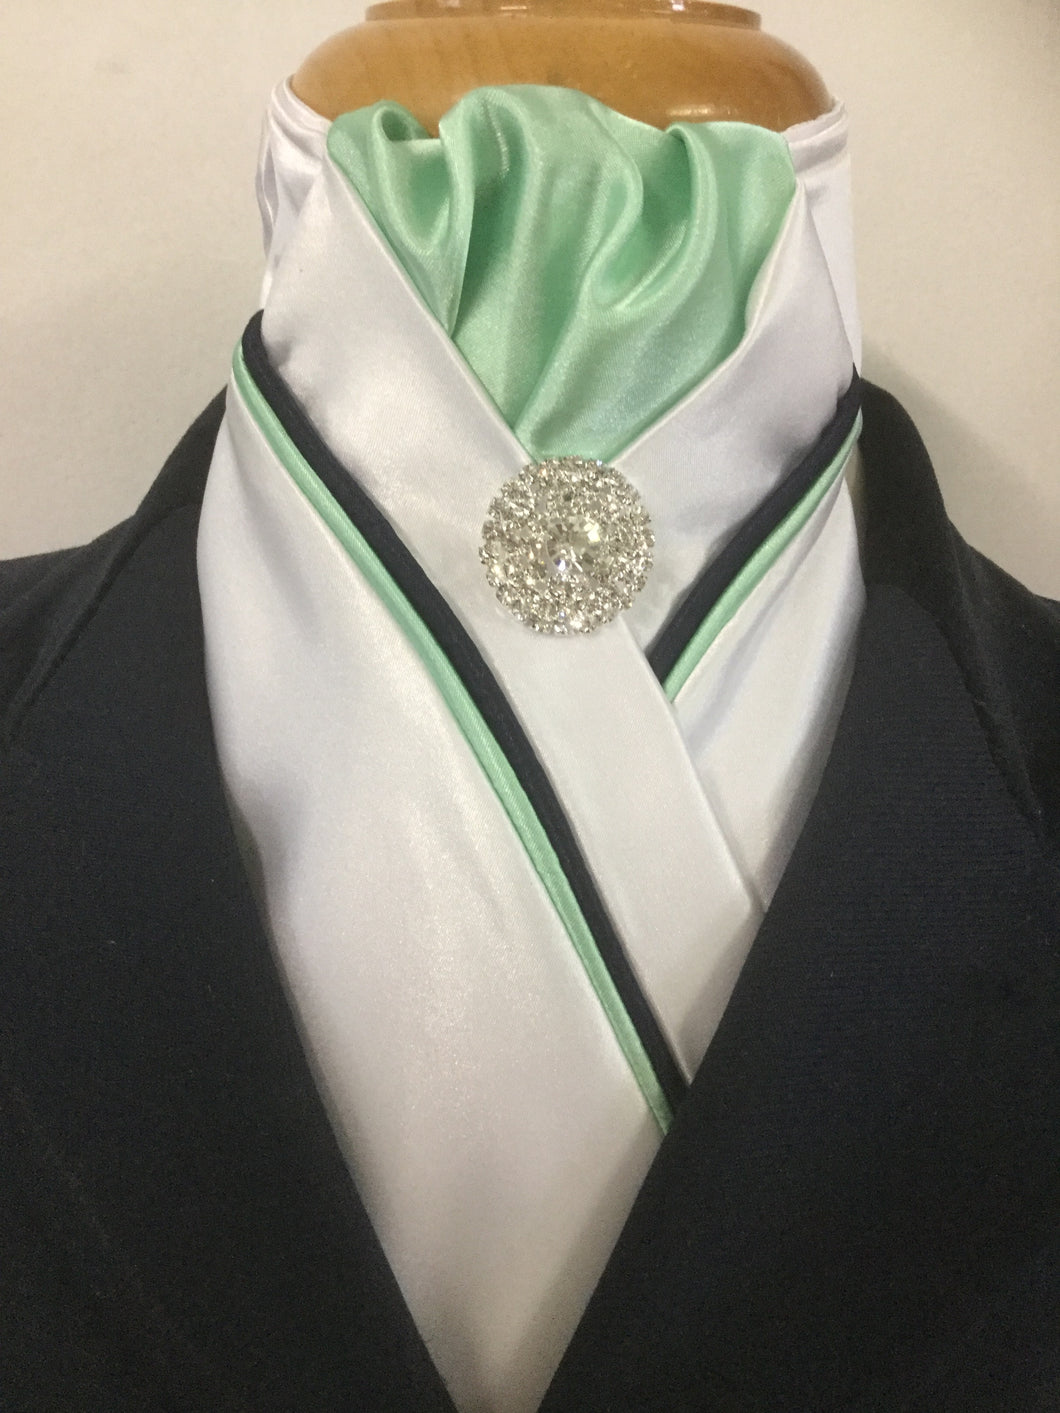 HHD White Custom Stock Tie Mint Green & Navy Available in Other Colour Options